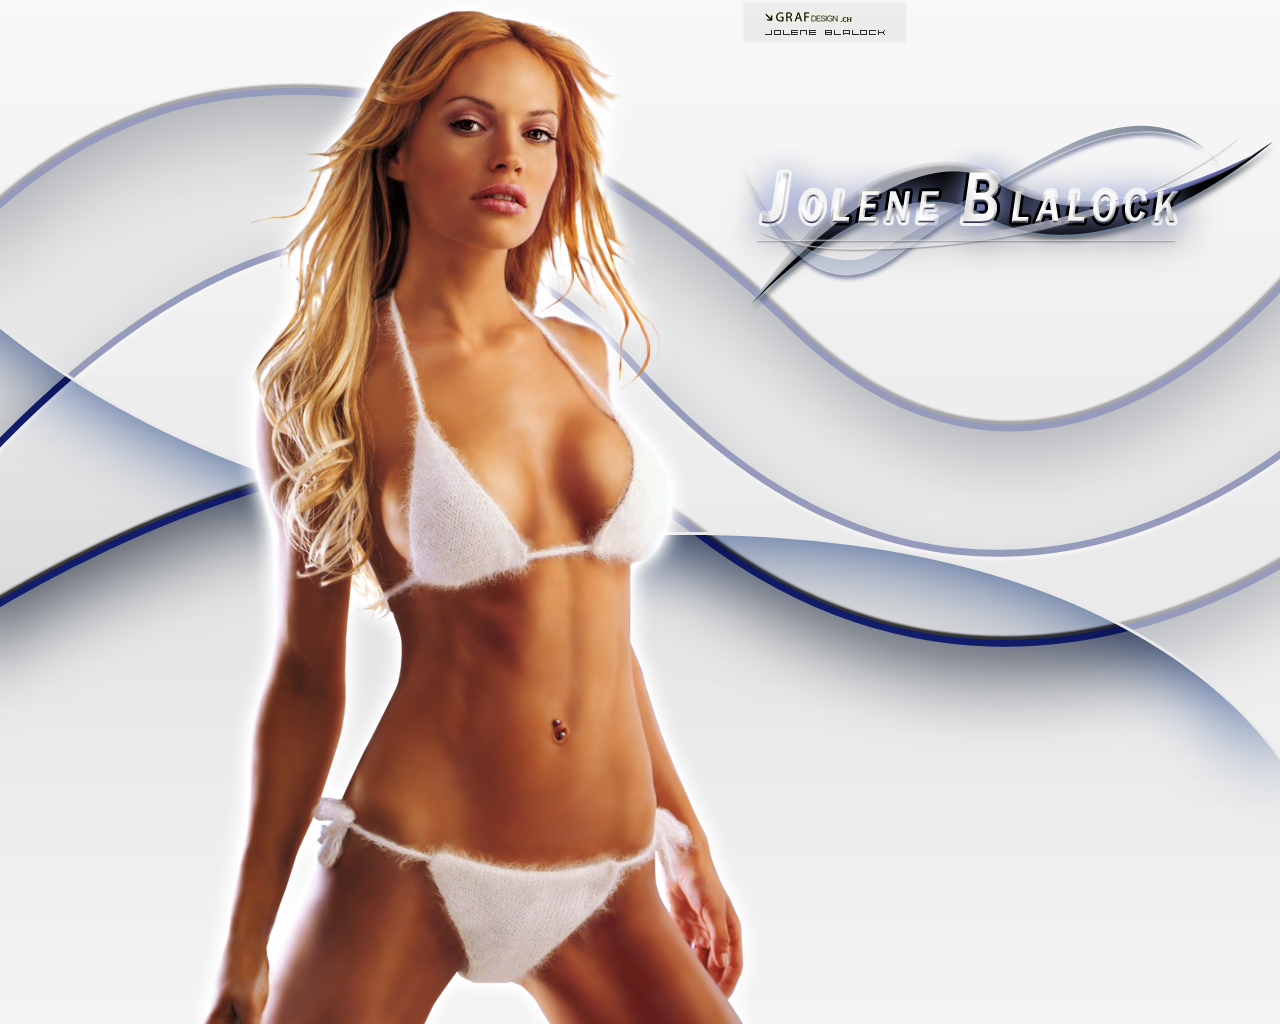 Jolene Blalock - Wallpaper